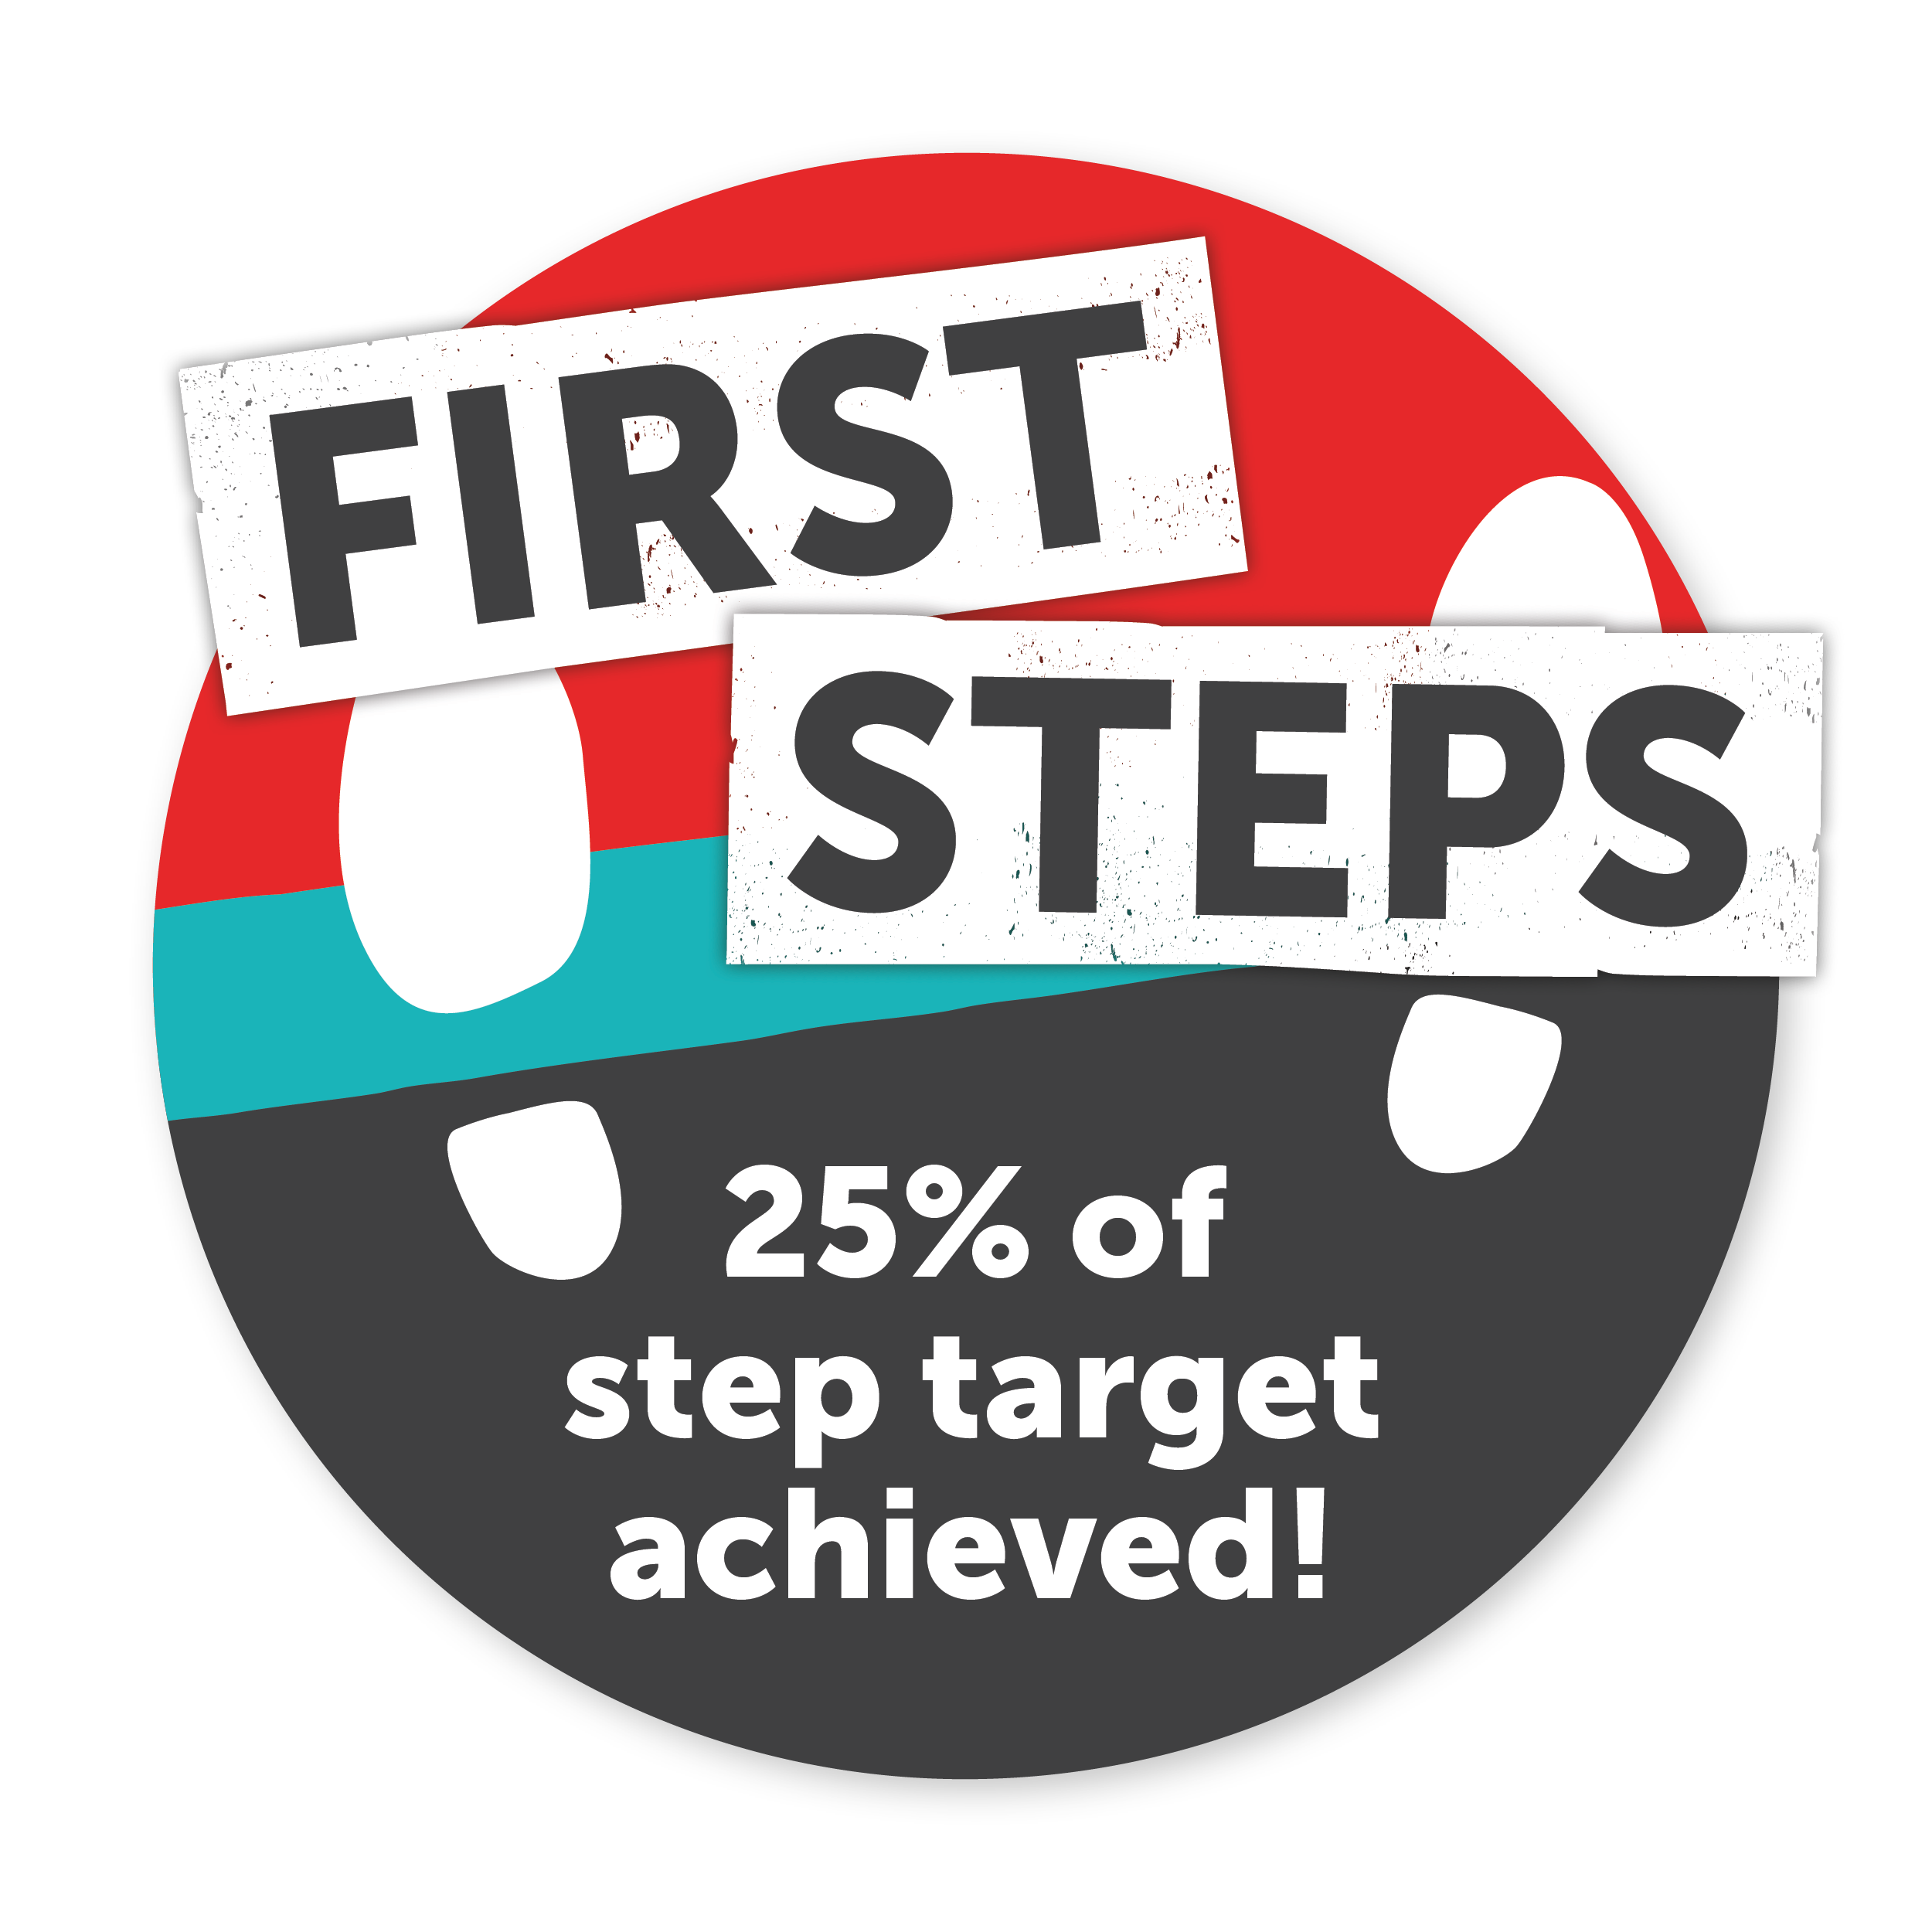 25% of step target achieved